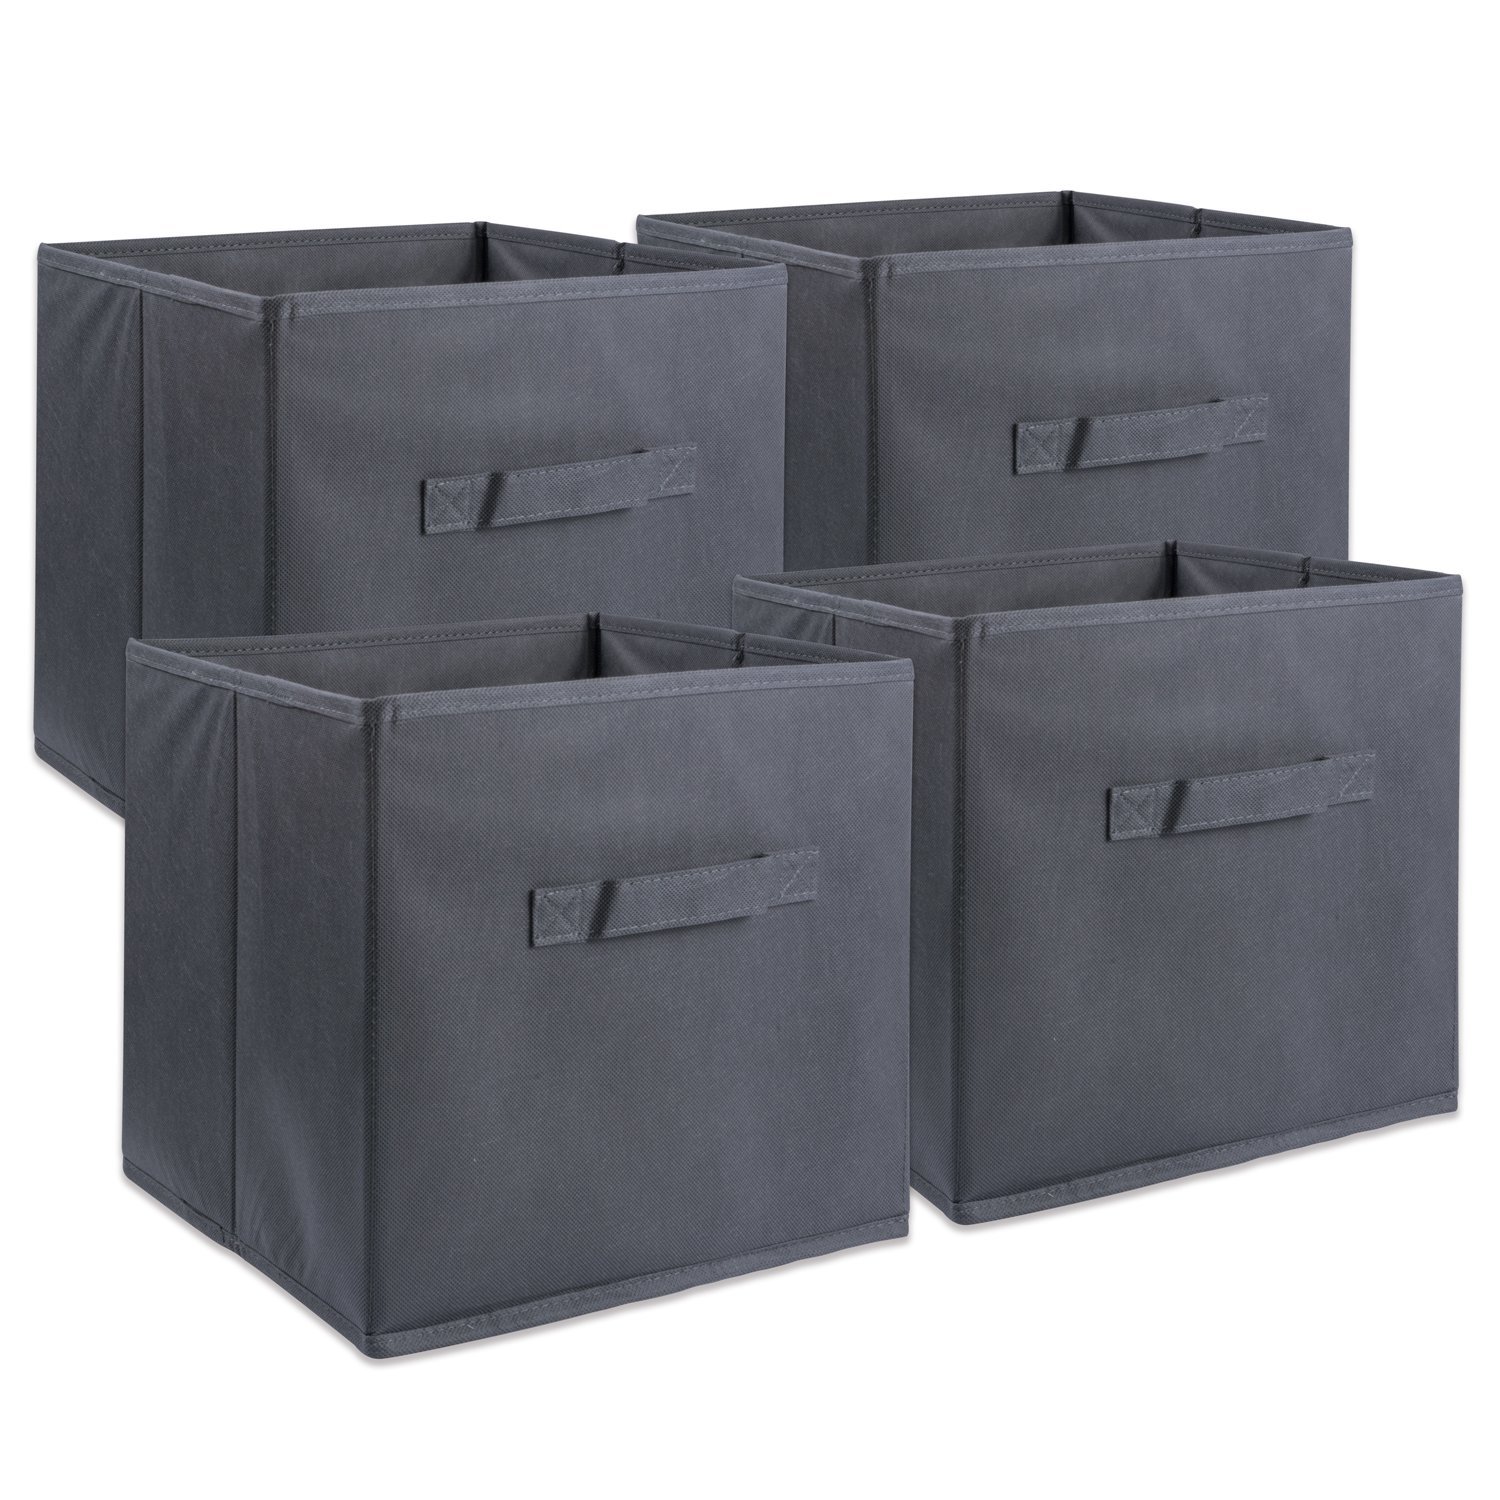 DII Fabric Storage Bins for Nursery, Offices, & Home Organization, Containers Are Made To Fit Standard Cube Organizers (11x11x11'') Gray - Set of 4